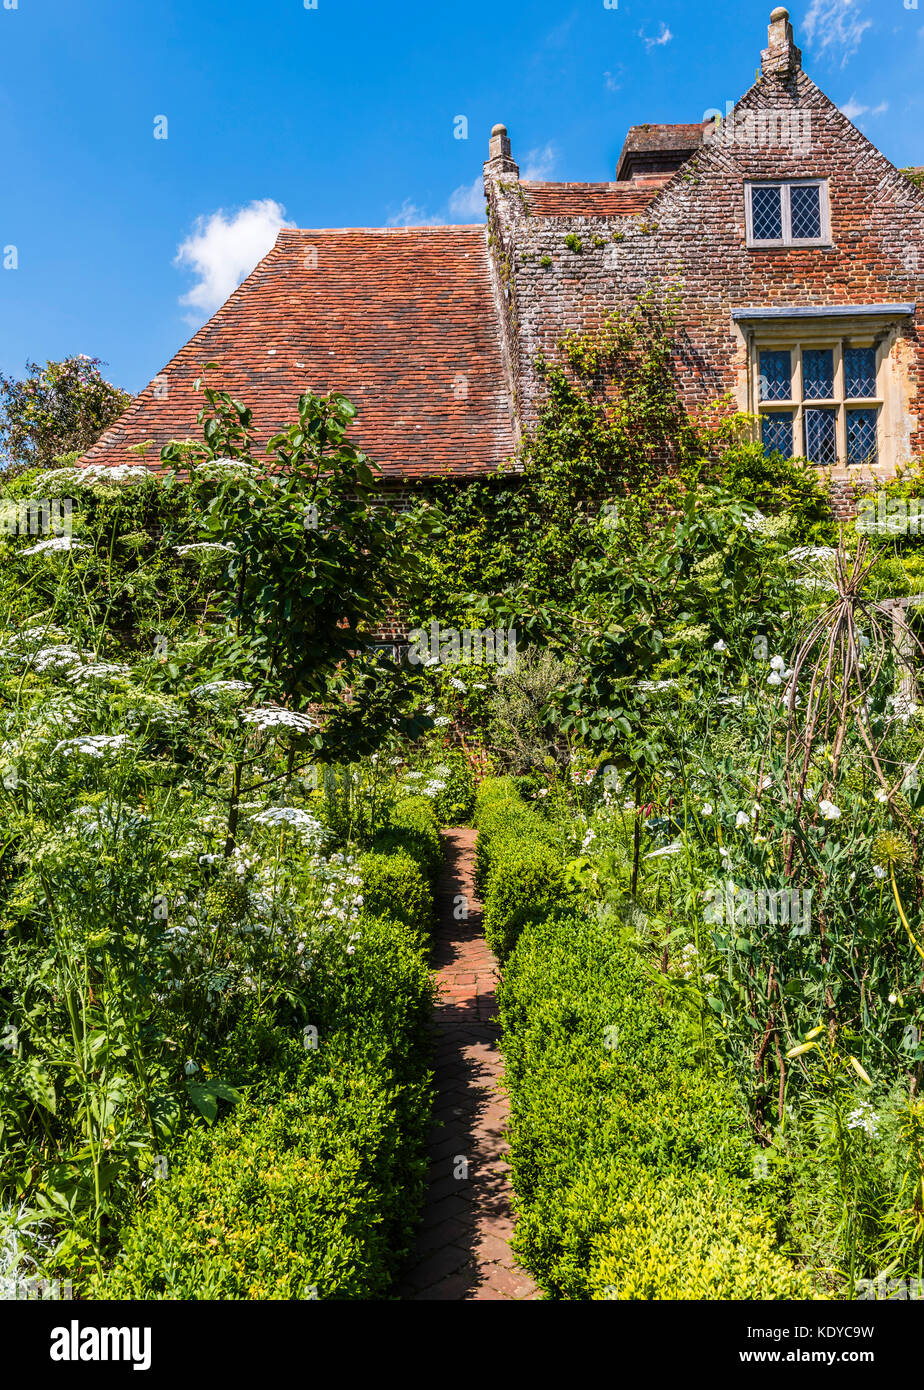 Cottage and garden at Sissinghurst Gardens, Kent, UK - Stock Image